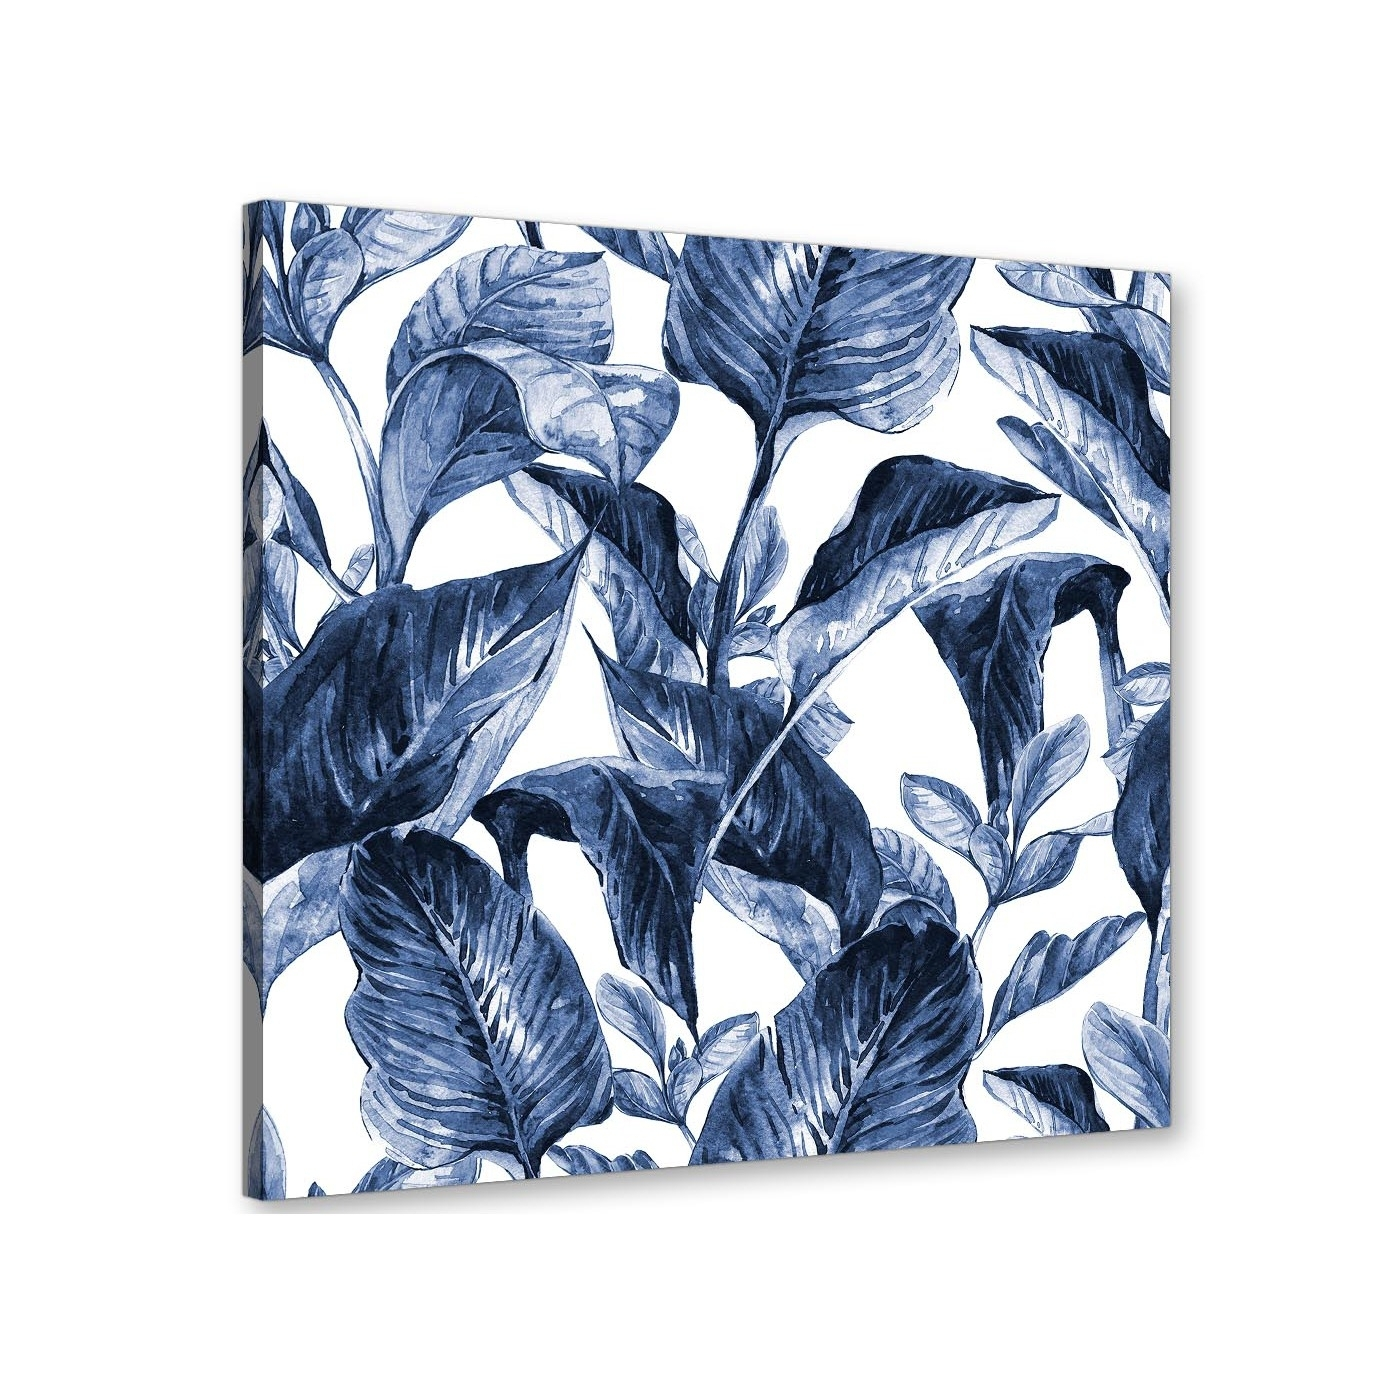 Indigo Navy Blue White Tropical Leaves Canvas Wall Art – Modern With Regard To Most Recently Released Navy Canvas Wall Art (View 13 of 15)